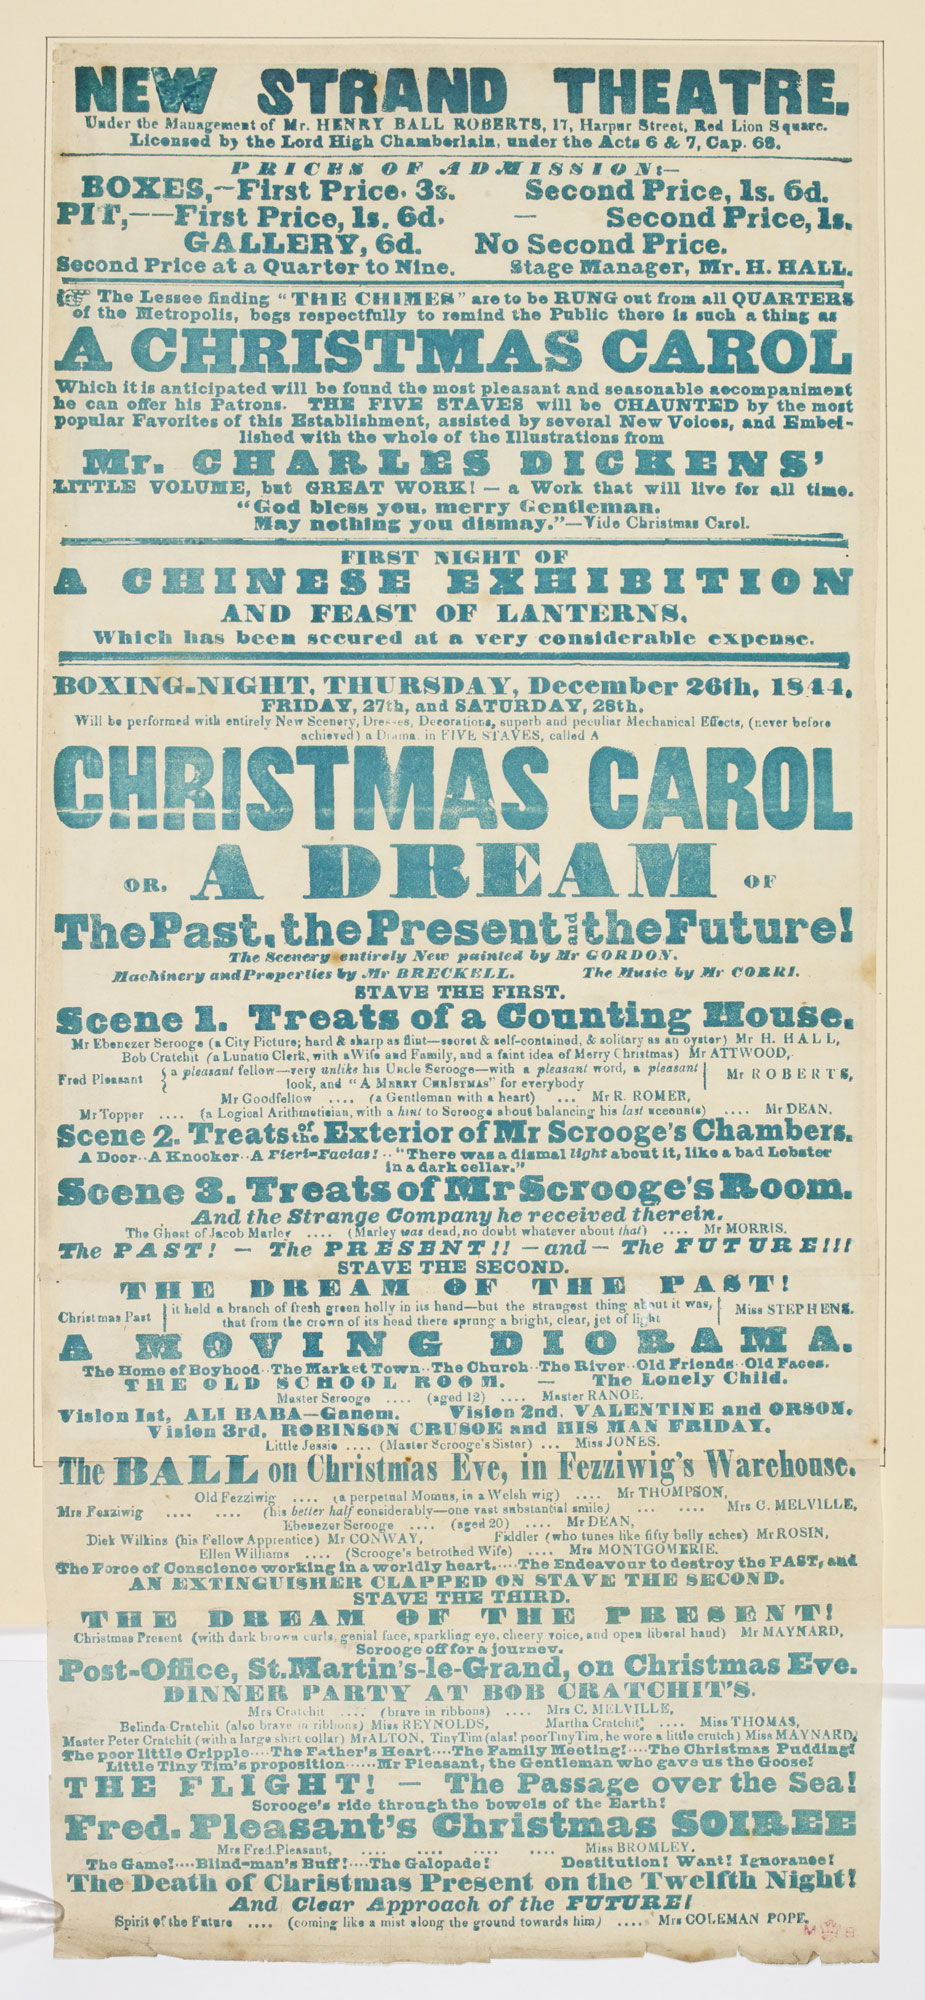 Playbill for the New Strand Theatre advertising Charles Webb's adaptation of 'A Christmas Carol' [page: 119]